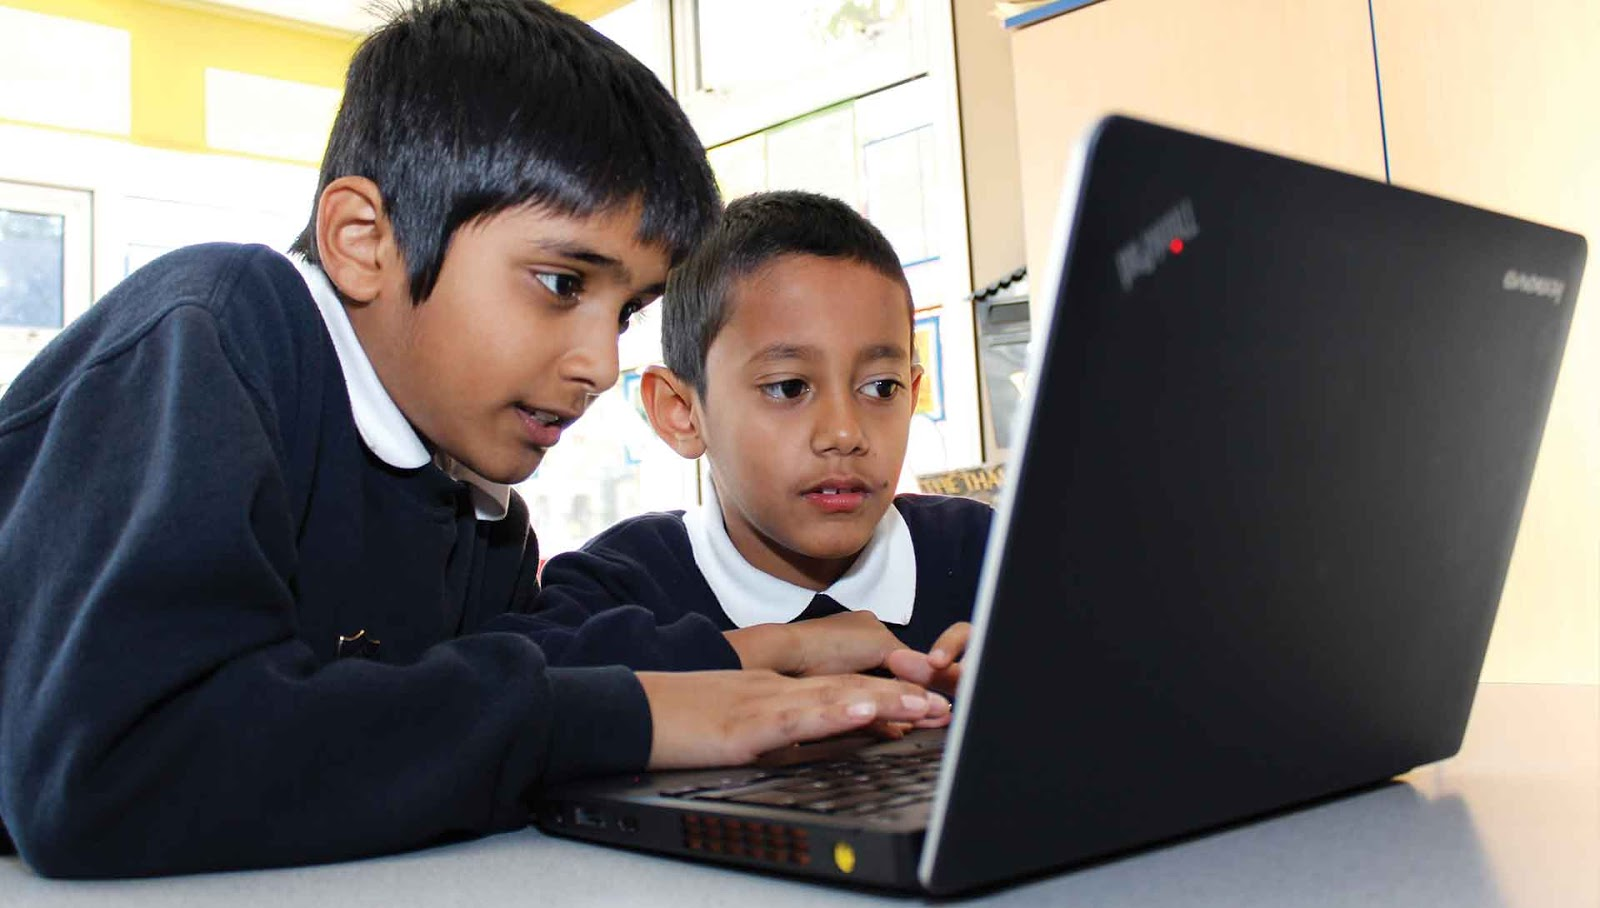 computer boon children essay Hi please evaluate this essay and gv me a score for 10 it will help in improving my writing skills in today's modern world, computers are an essential part of everyday life and there is no doubt that education and learning process have changed since their introduction.